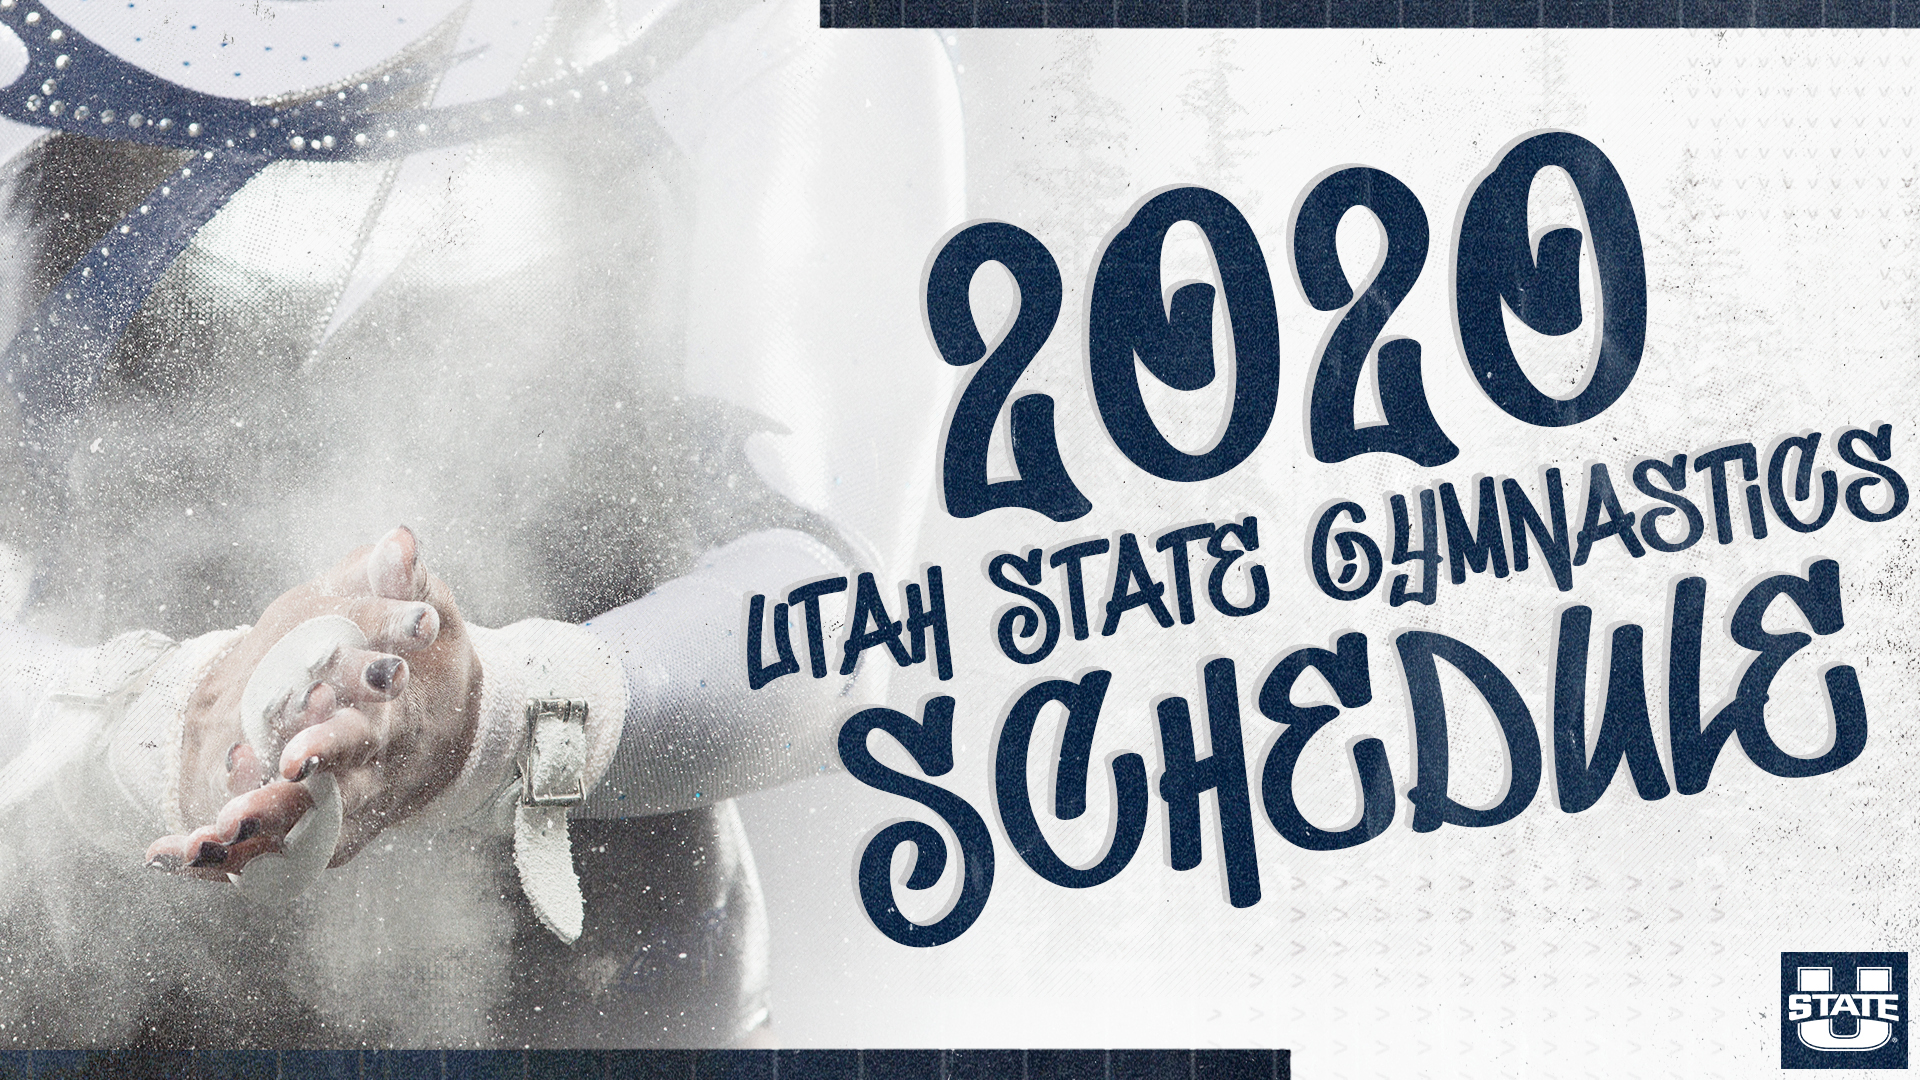 Utah State University Spring Break 2020.Utah State Gymnastics Announces 2020 Schedule Utah State